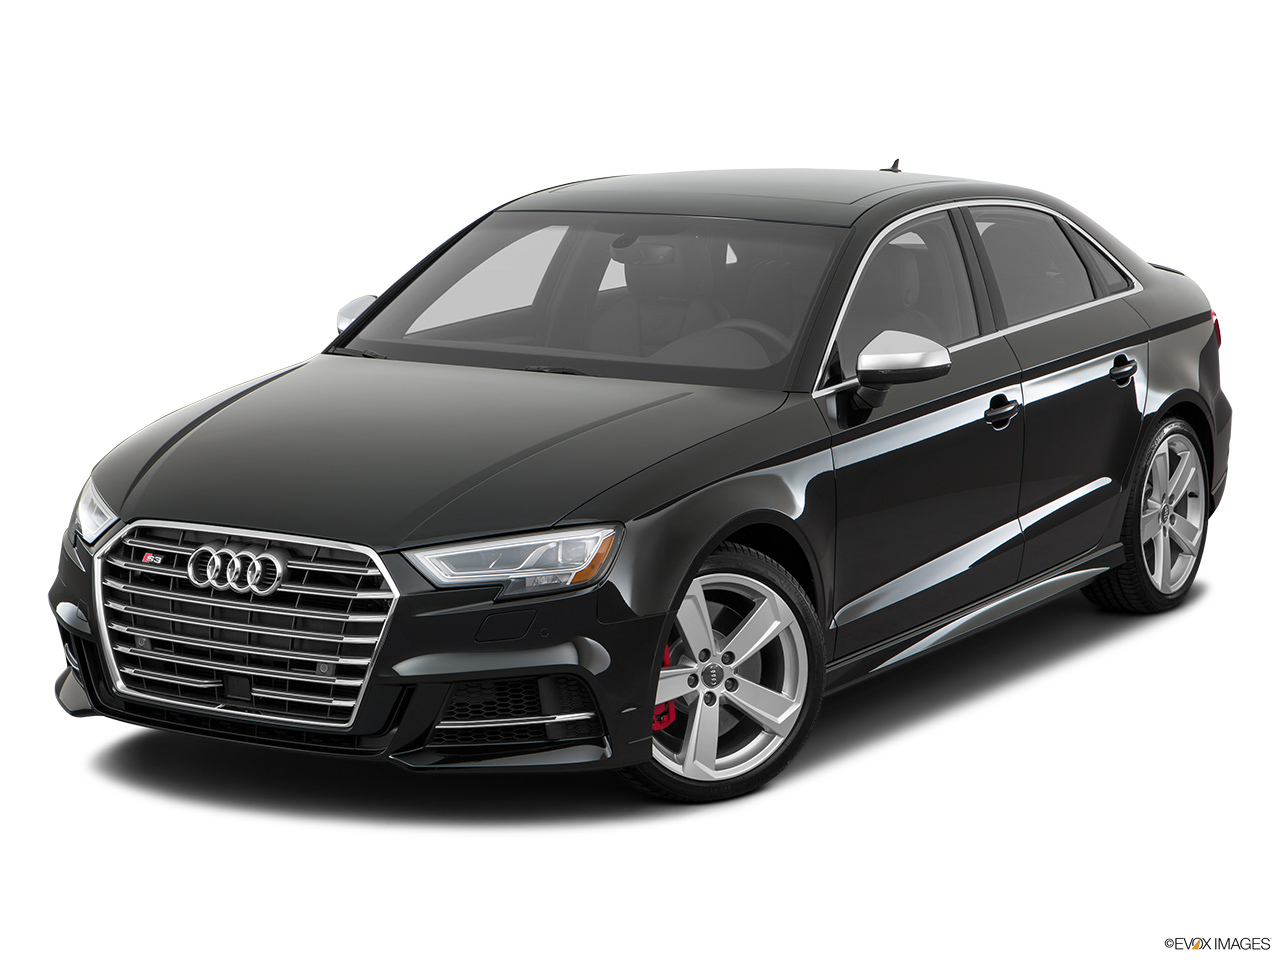 audi a3 sedan 2018 s3 292 hp in qatar new car prices. Black Bedroom Furniture Sets. Home Design Ideas